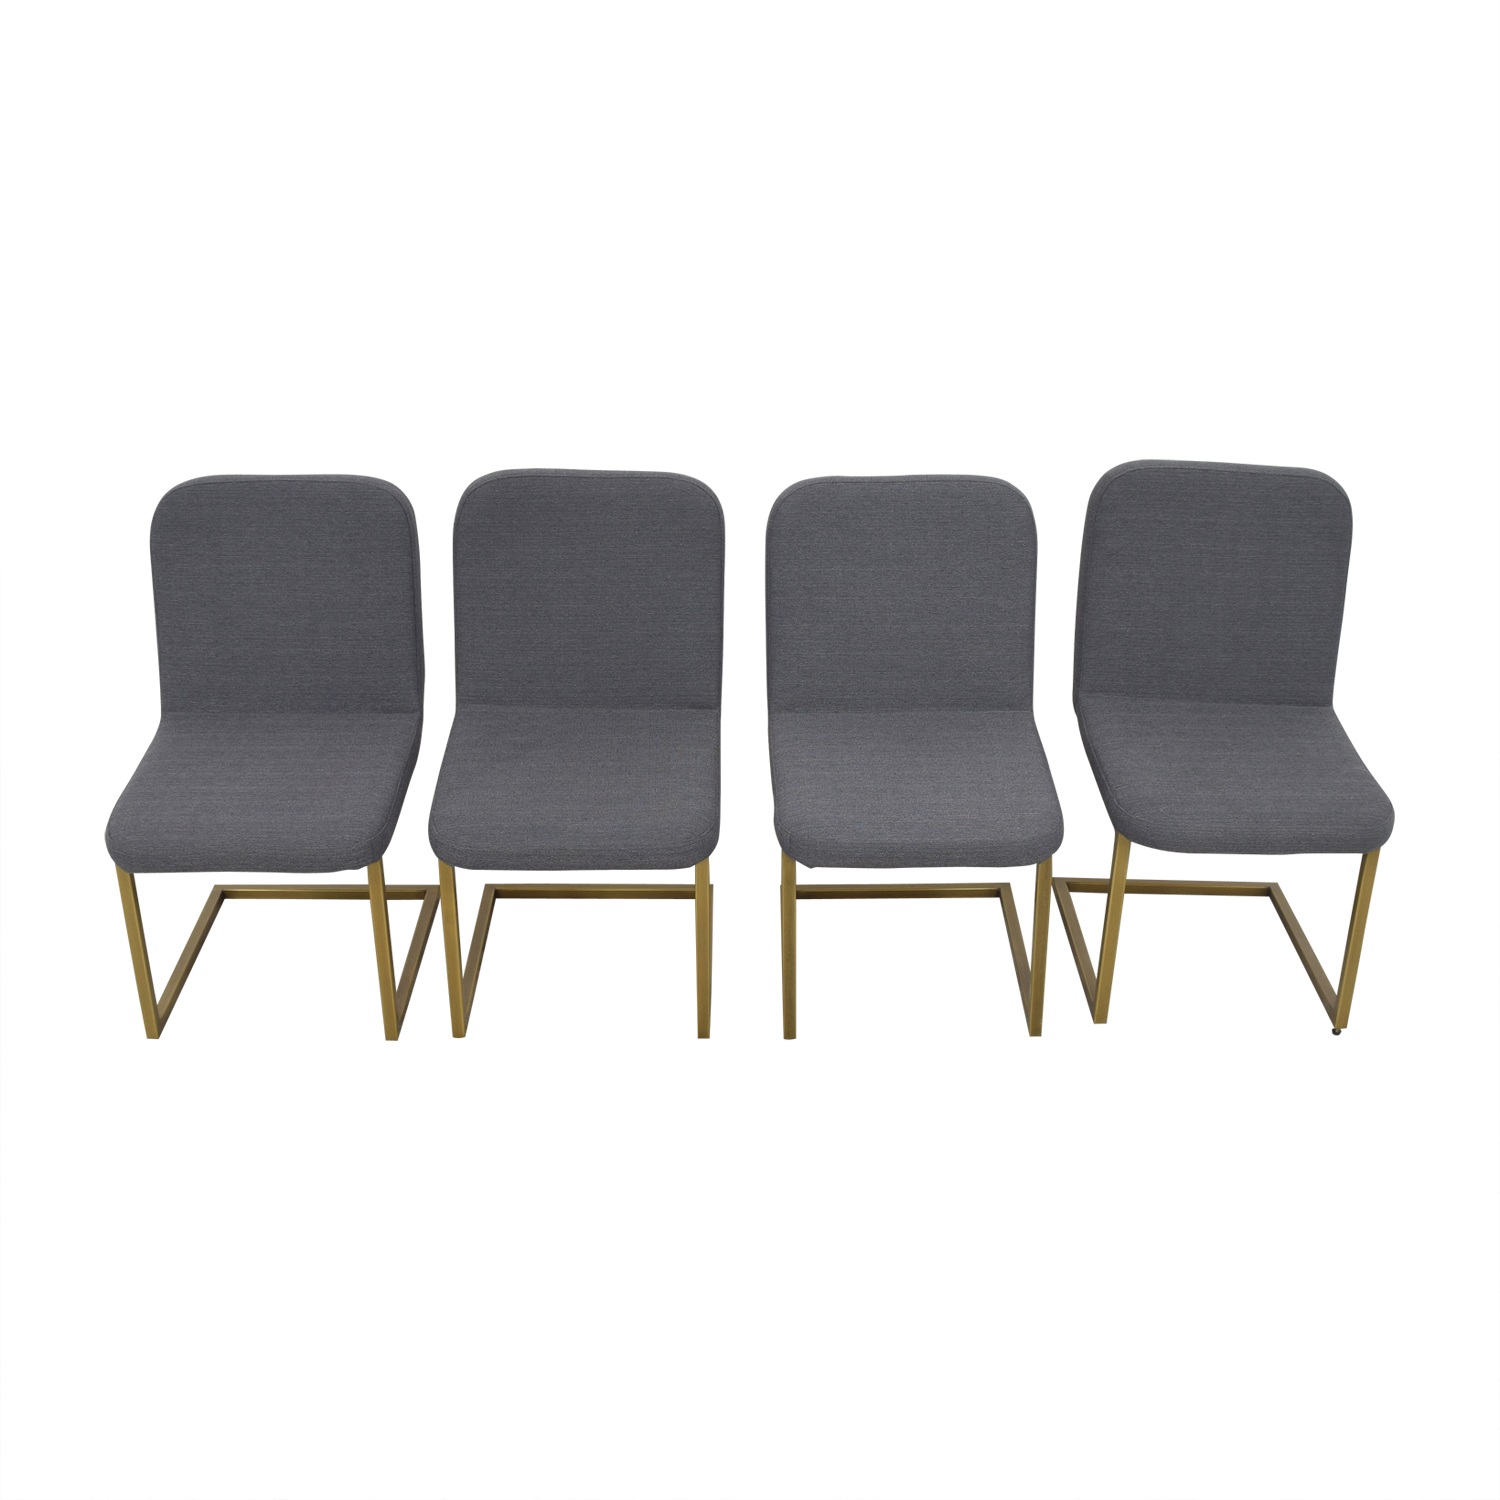 Article Article Alchemy Dining Chairs on sale